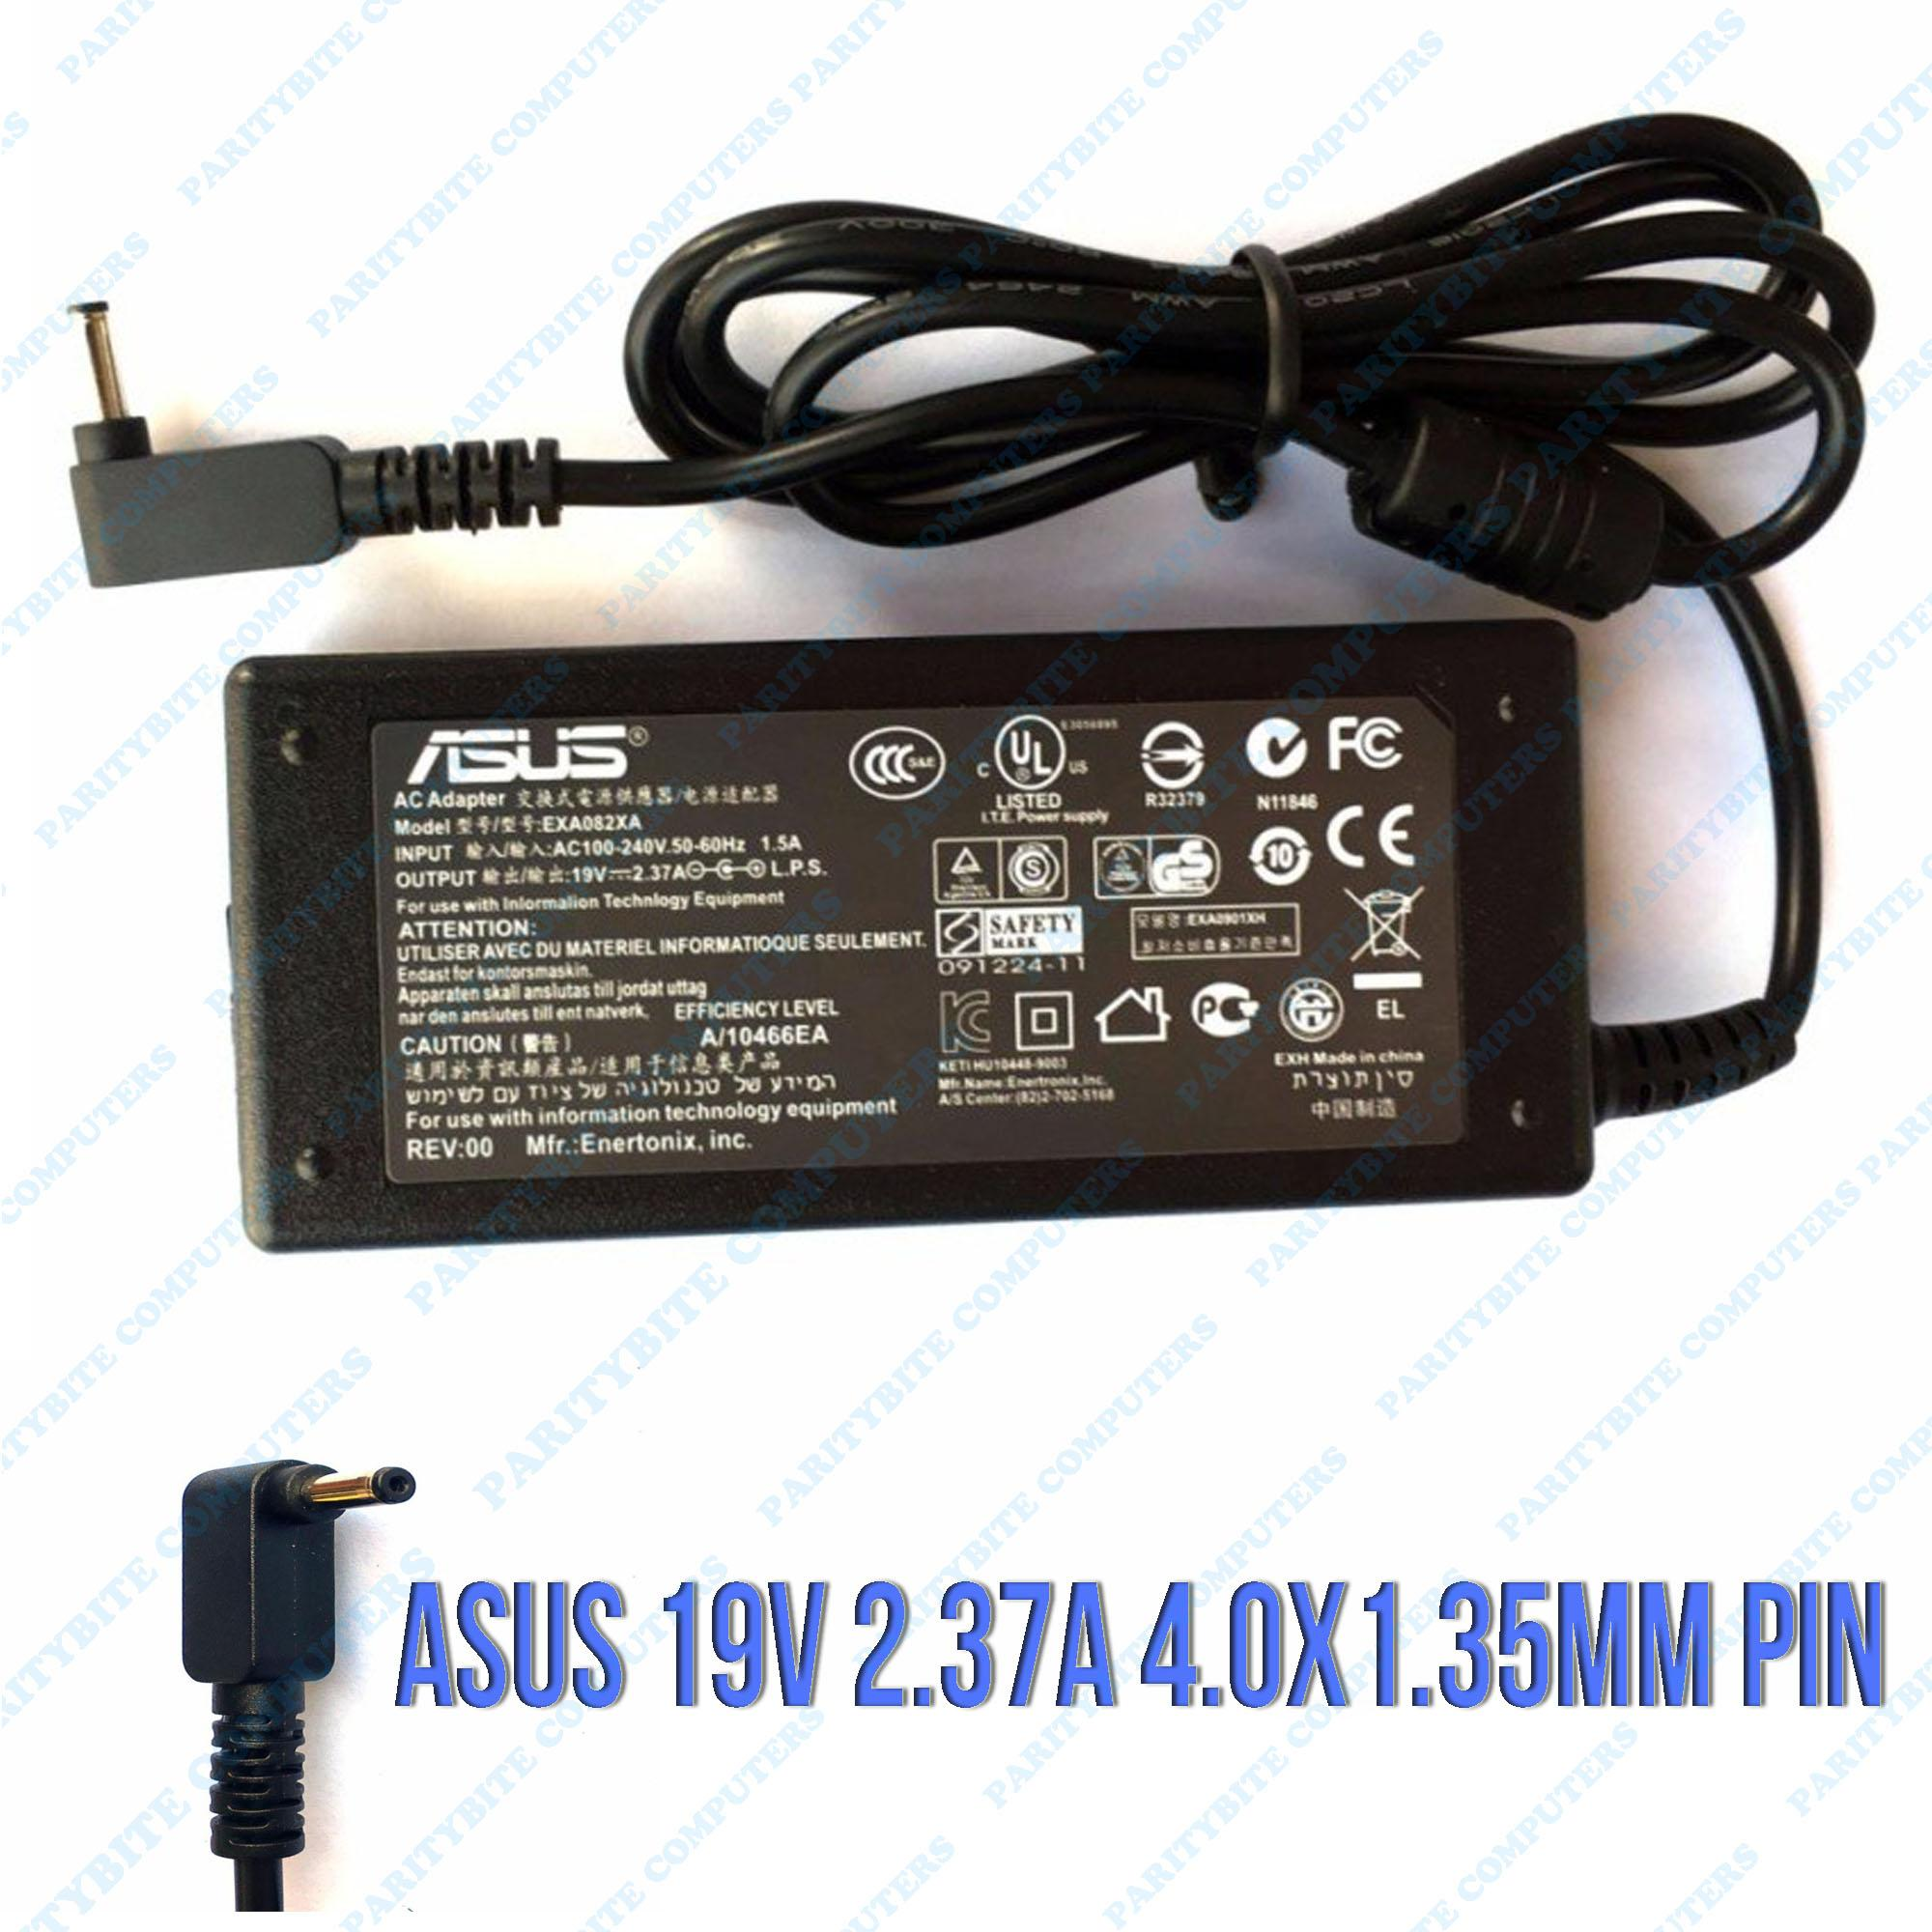 Asus Computer Accessories Philippines Pc For Sale Keyboard Original X453 X453m X453ma Series Charger Adapter 19v 237a 40x135mm Adp